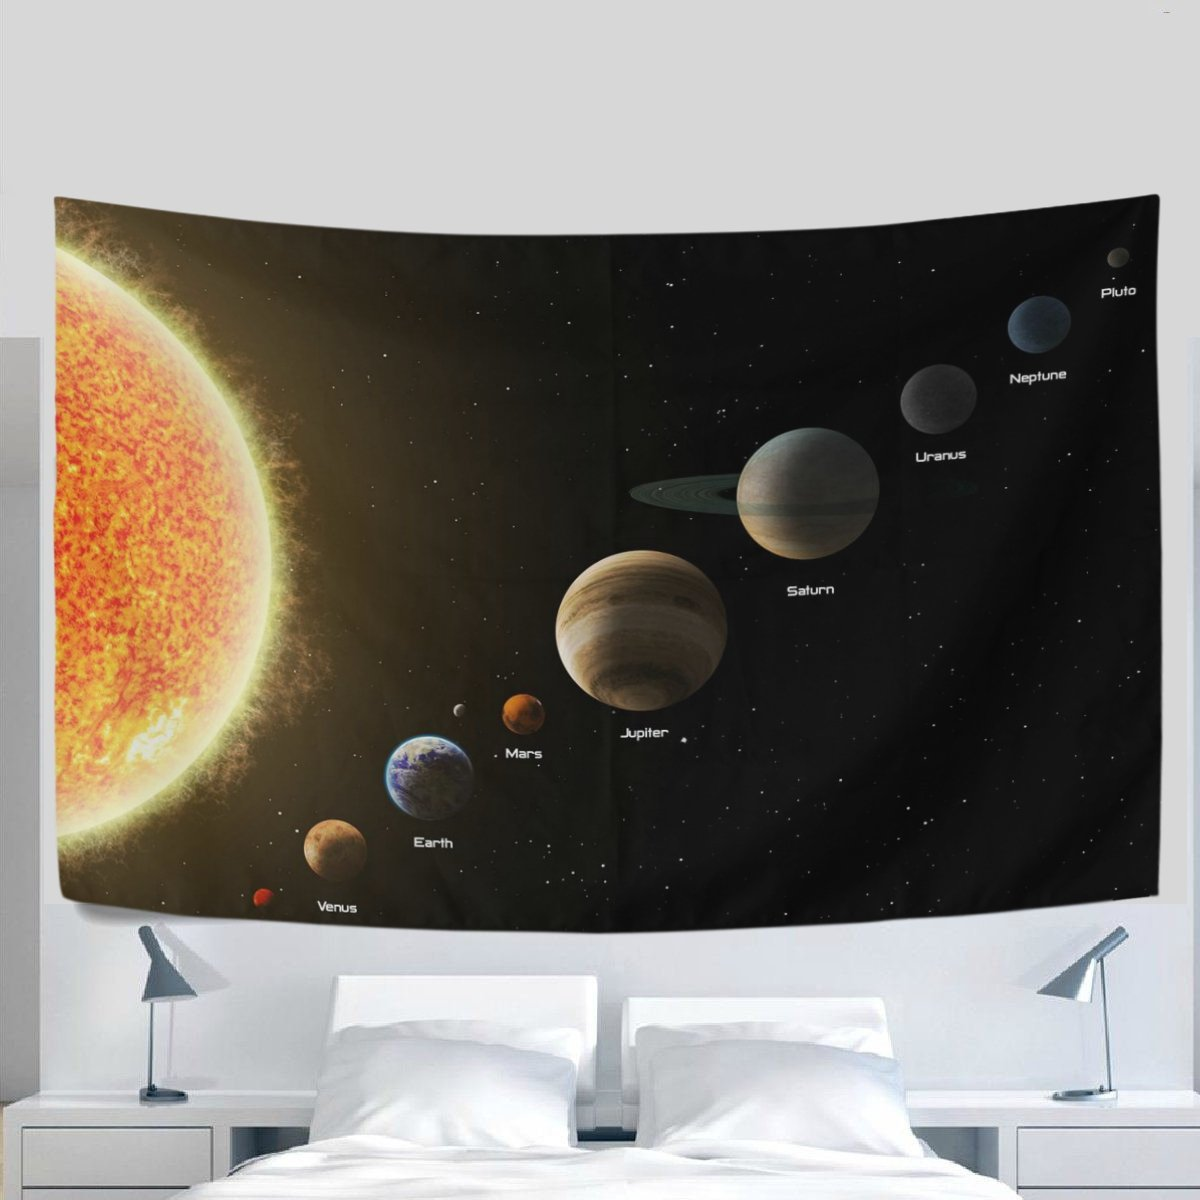 Home Decor Solar System Tapestries Hanging Bedroom Living Room Decorations Polyester Tapestry Wall Art 80X60 Inches